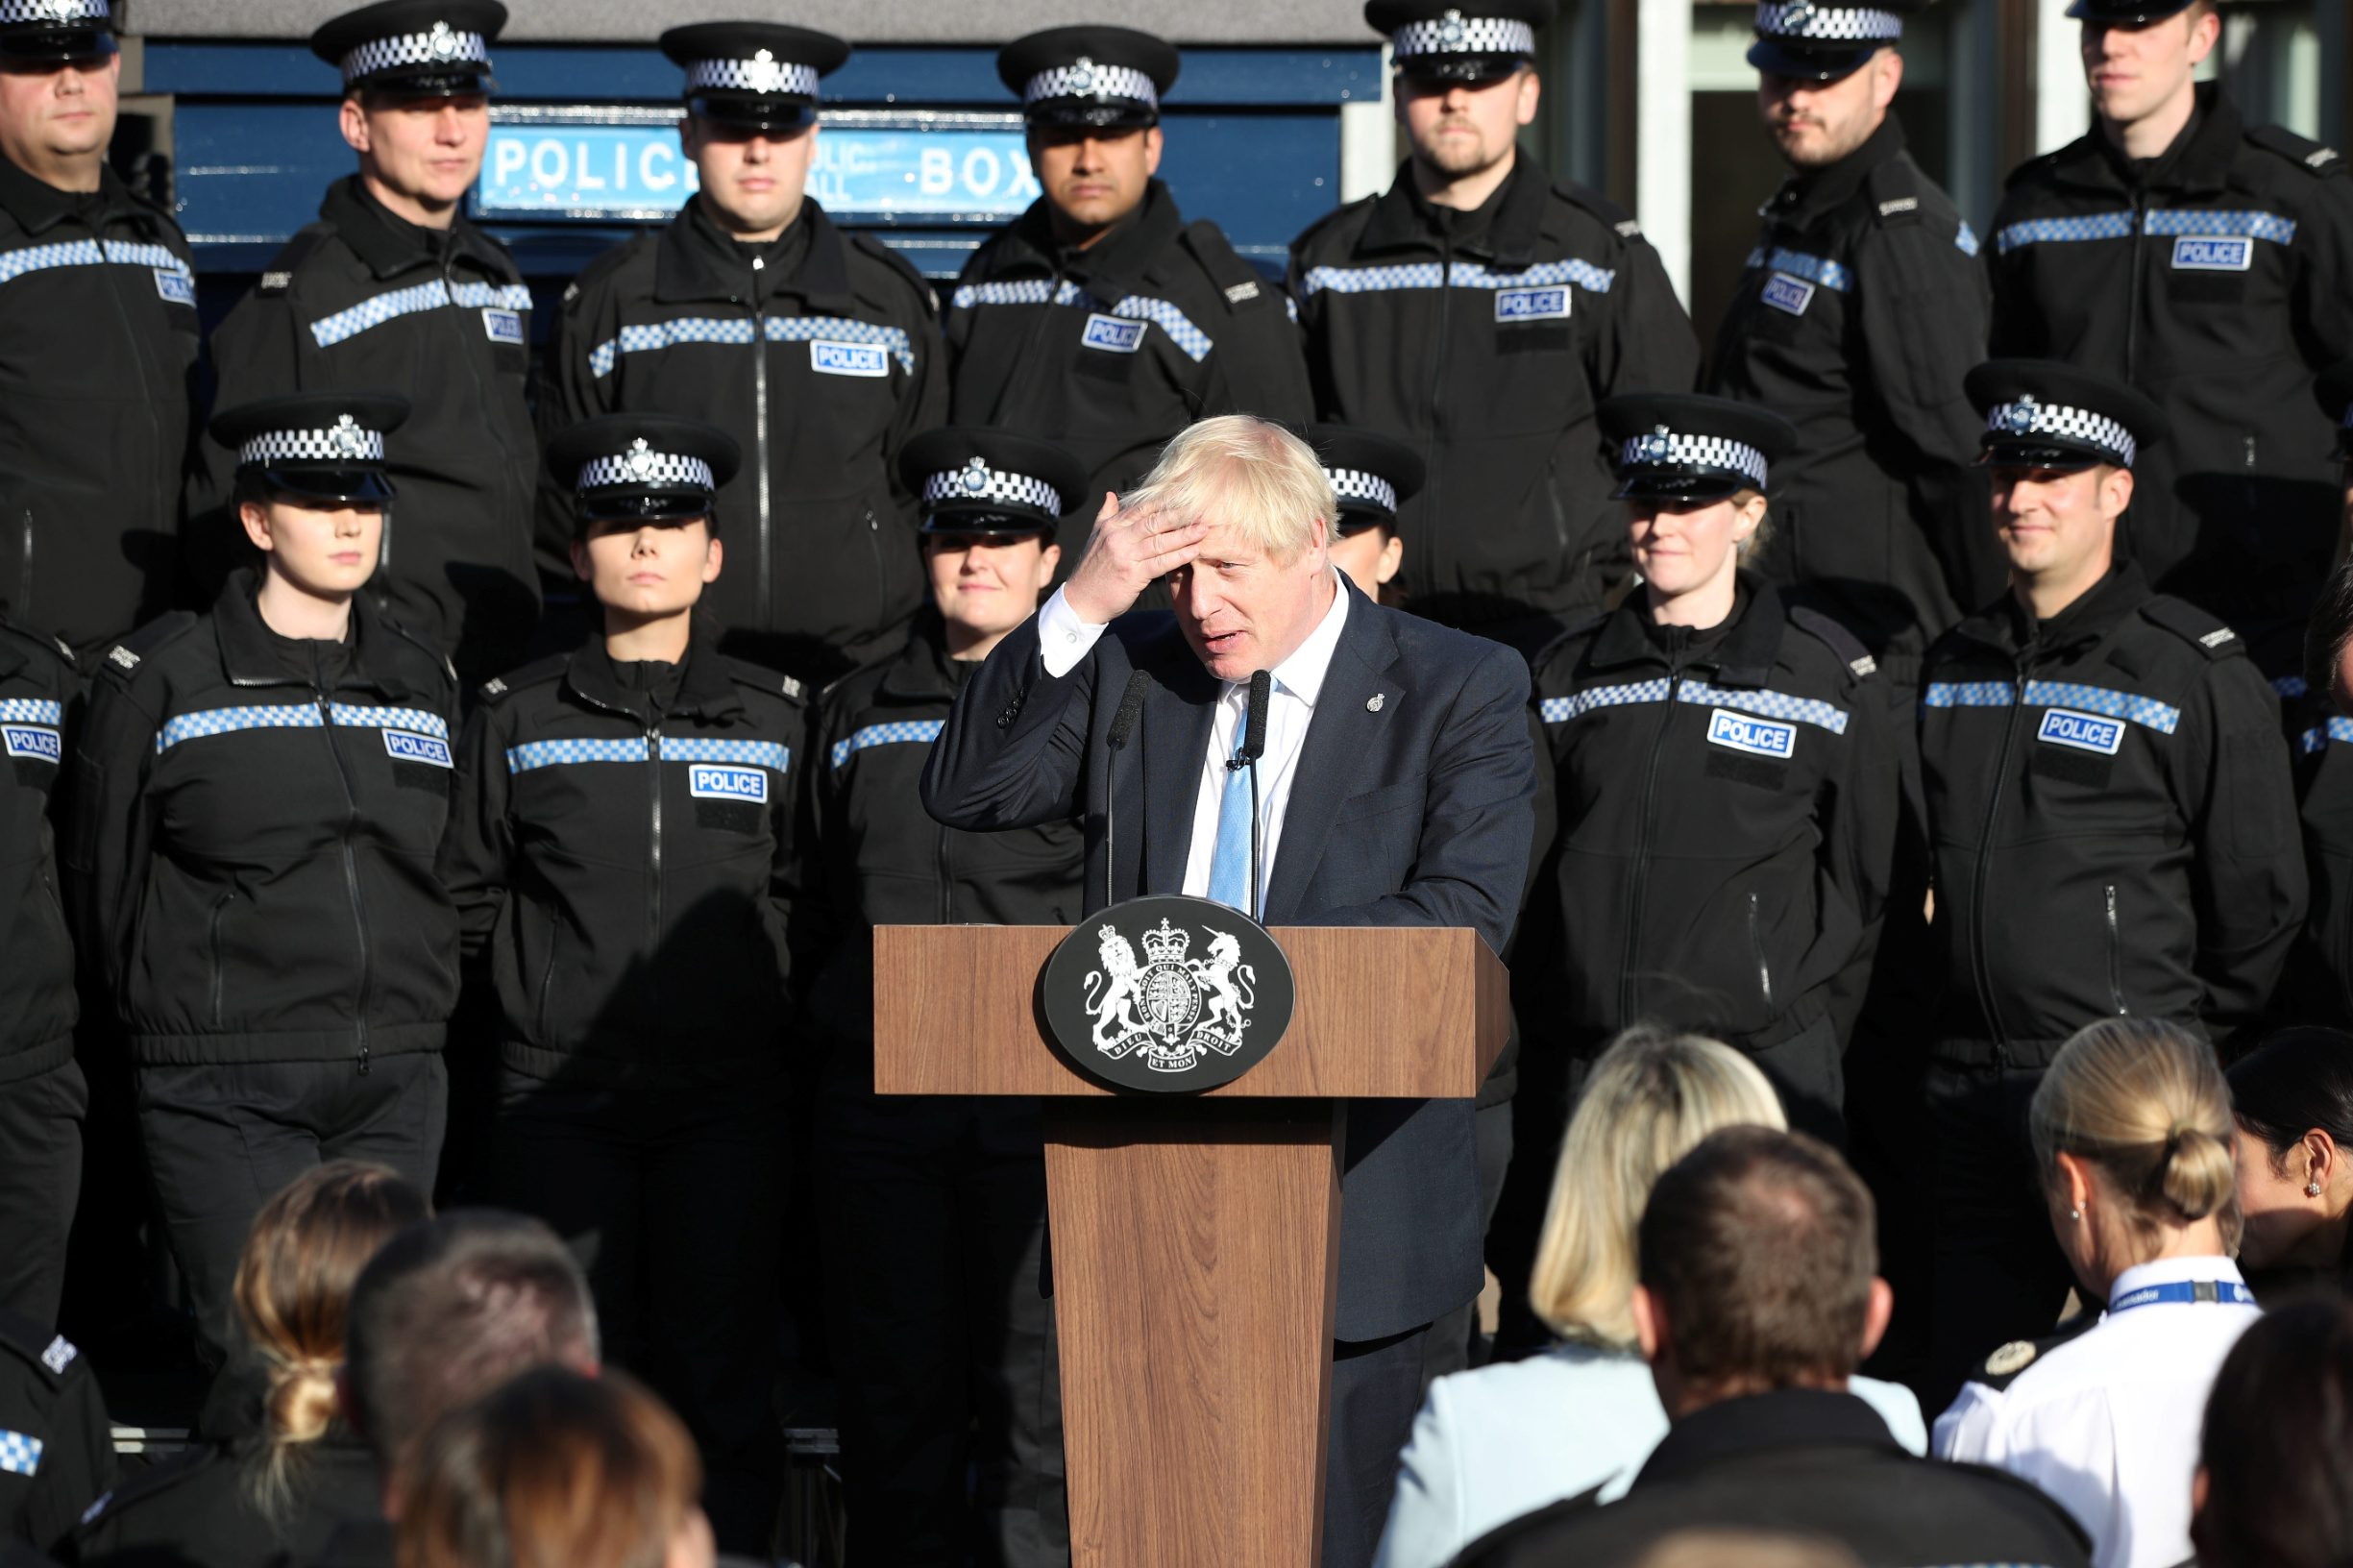 Britain's Prime Minister Boris Johnson, makes a speech during a visit to West Yorkshire, Britain September 5, 2019. Danny Lawson/PA Wire/Pool via REUTERS